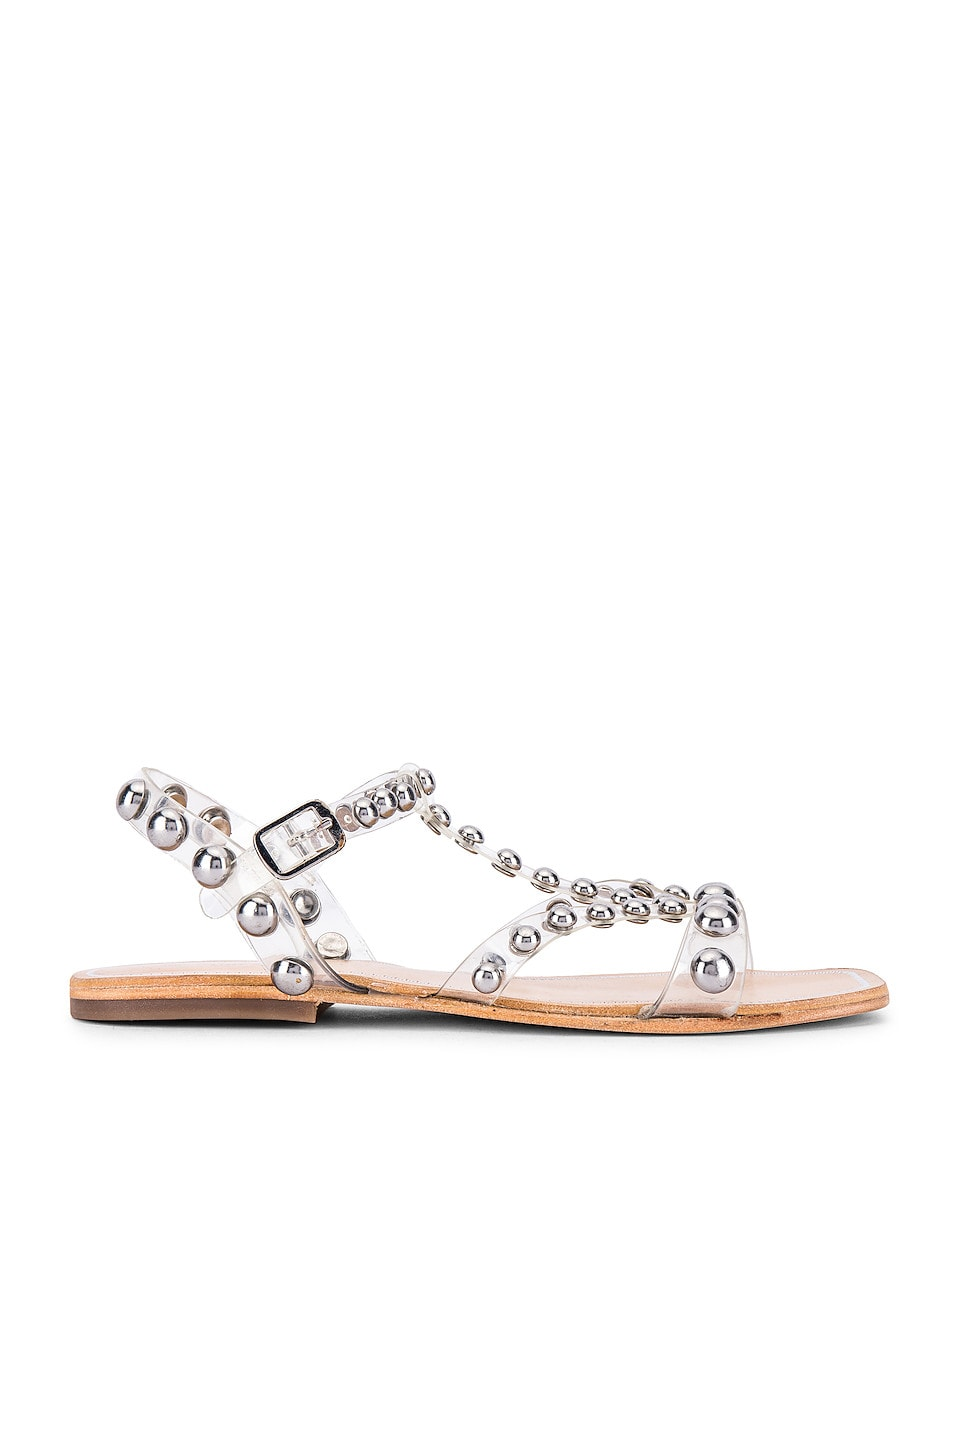 Jeffrey Campbell Amaryl Sandal in Clear & Silver